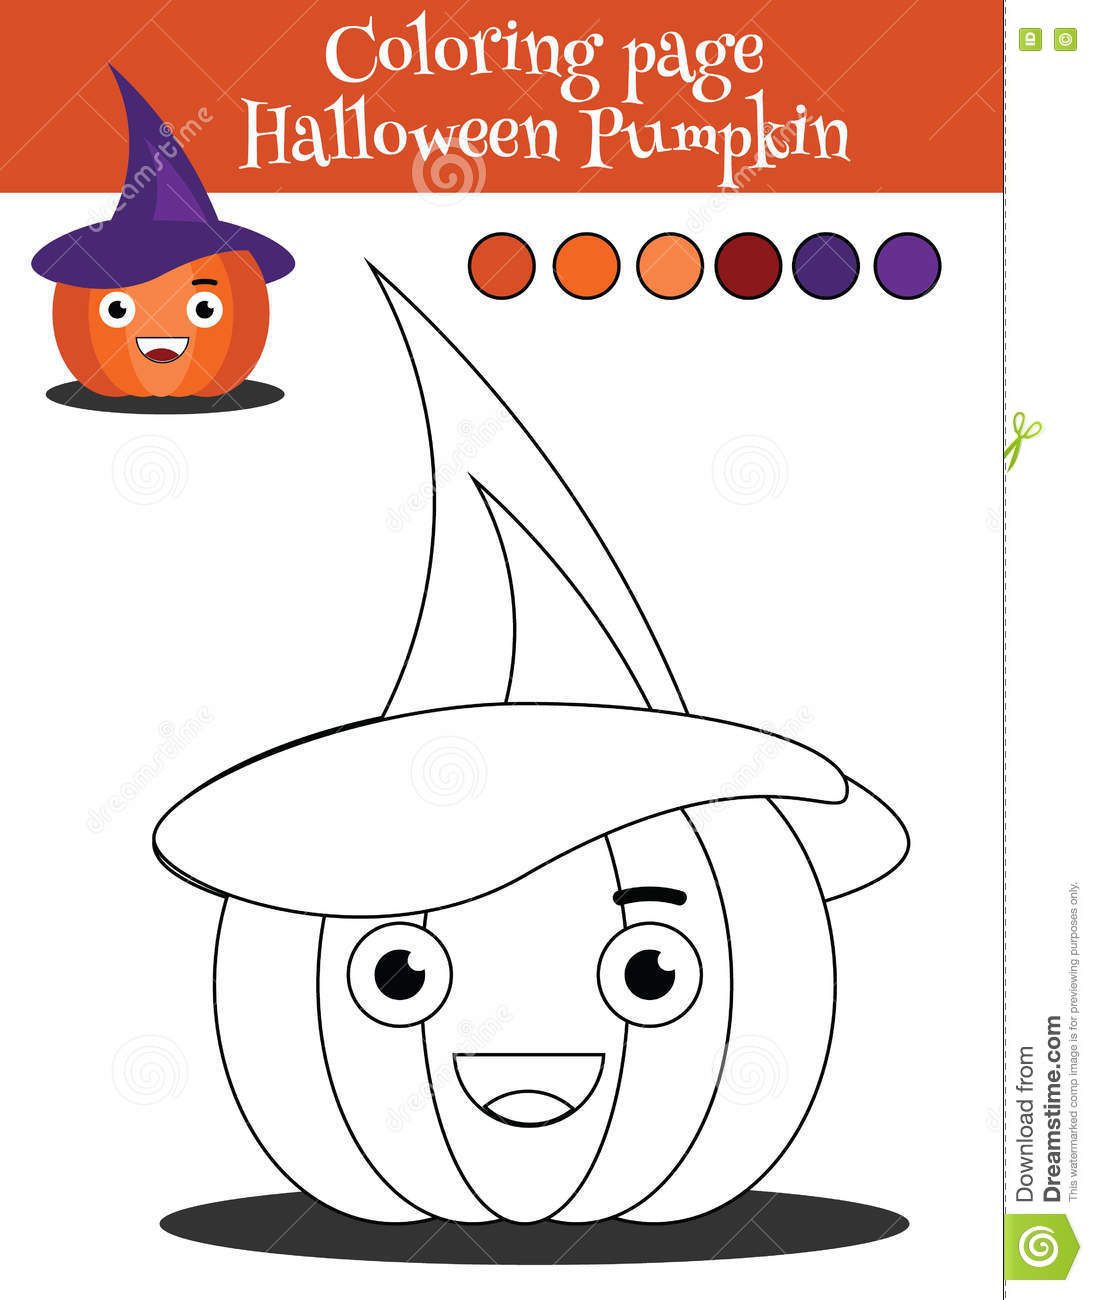 Coloring Page With Halloween Pumpkin Educational Game